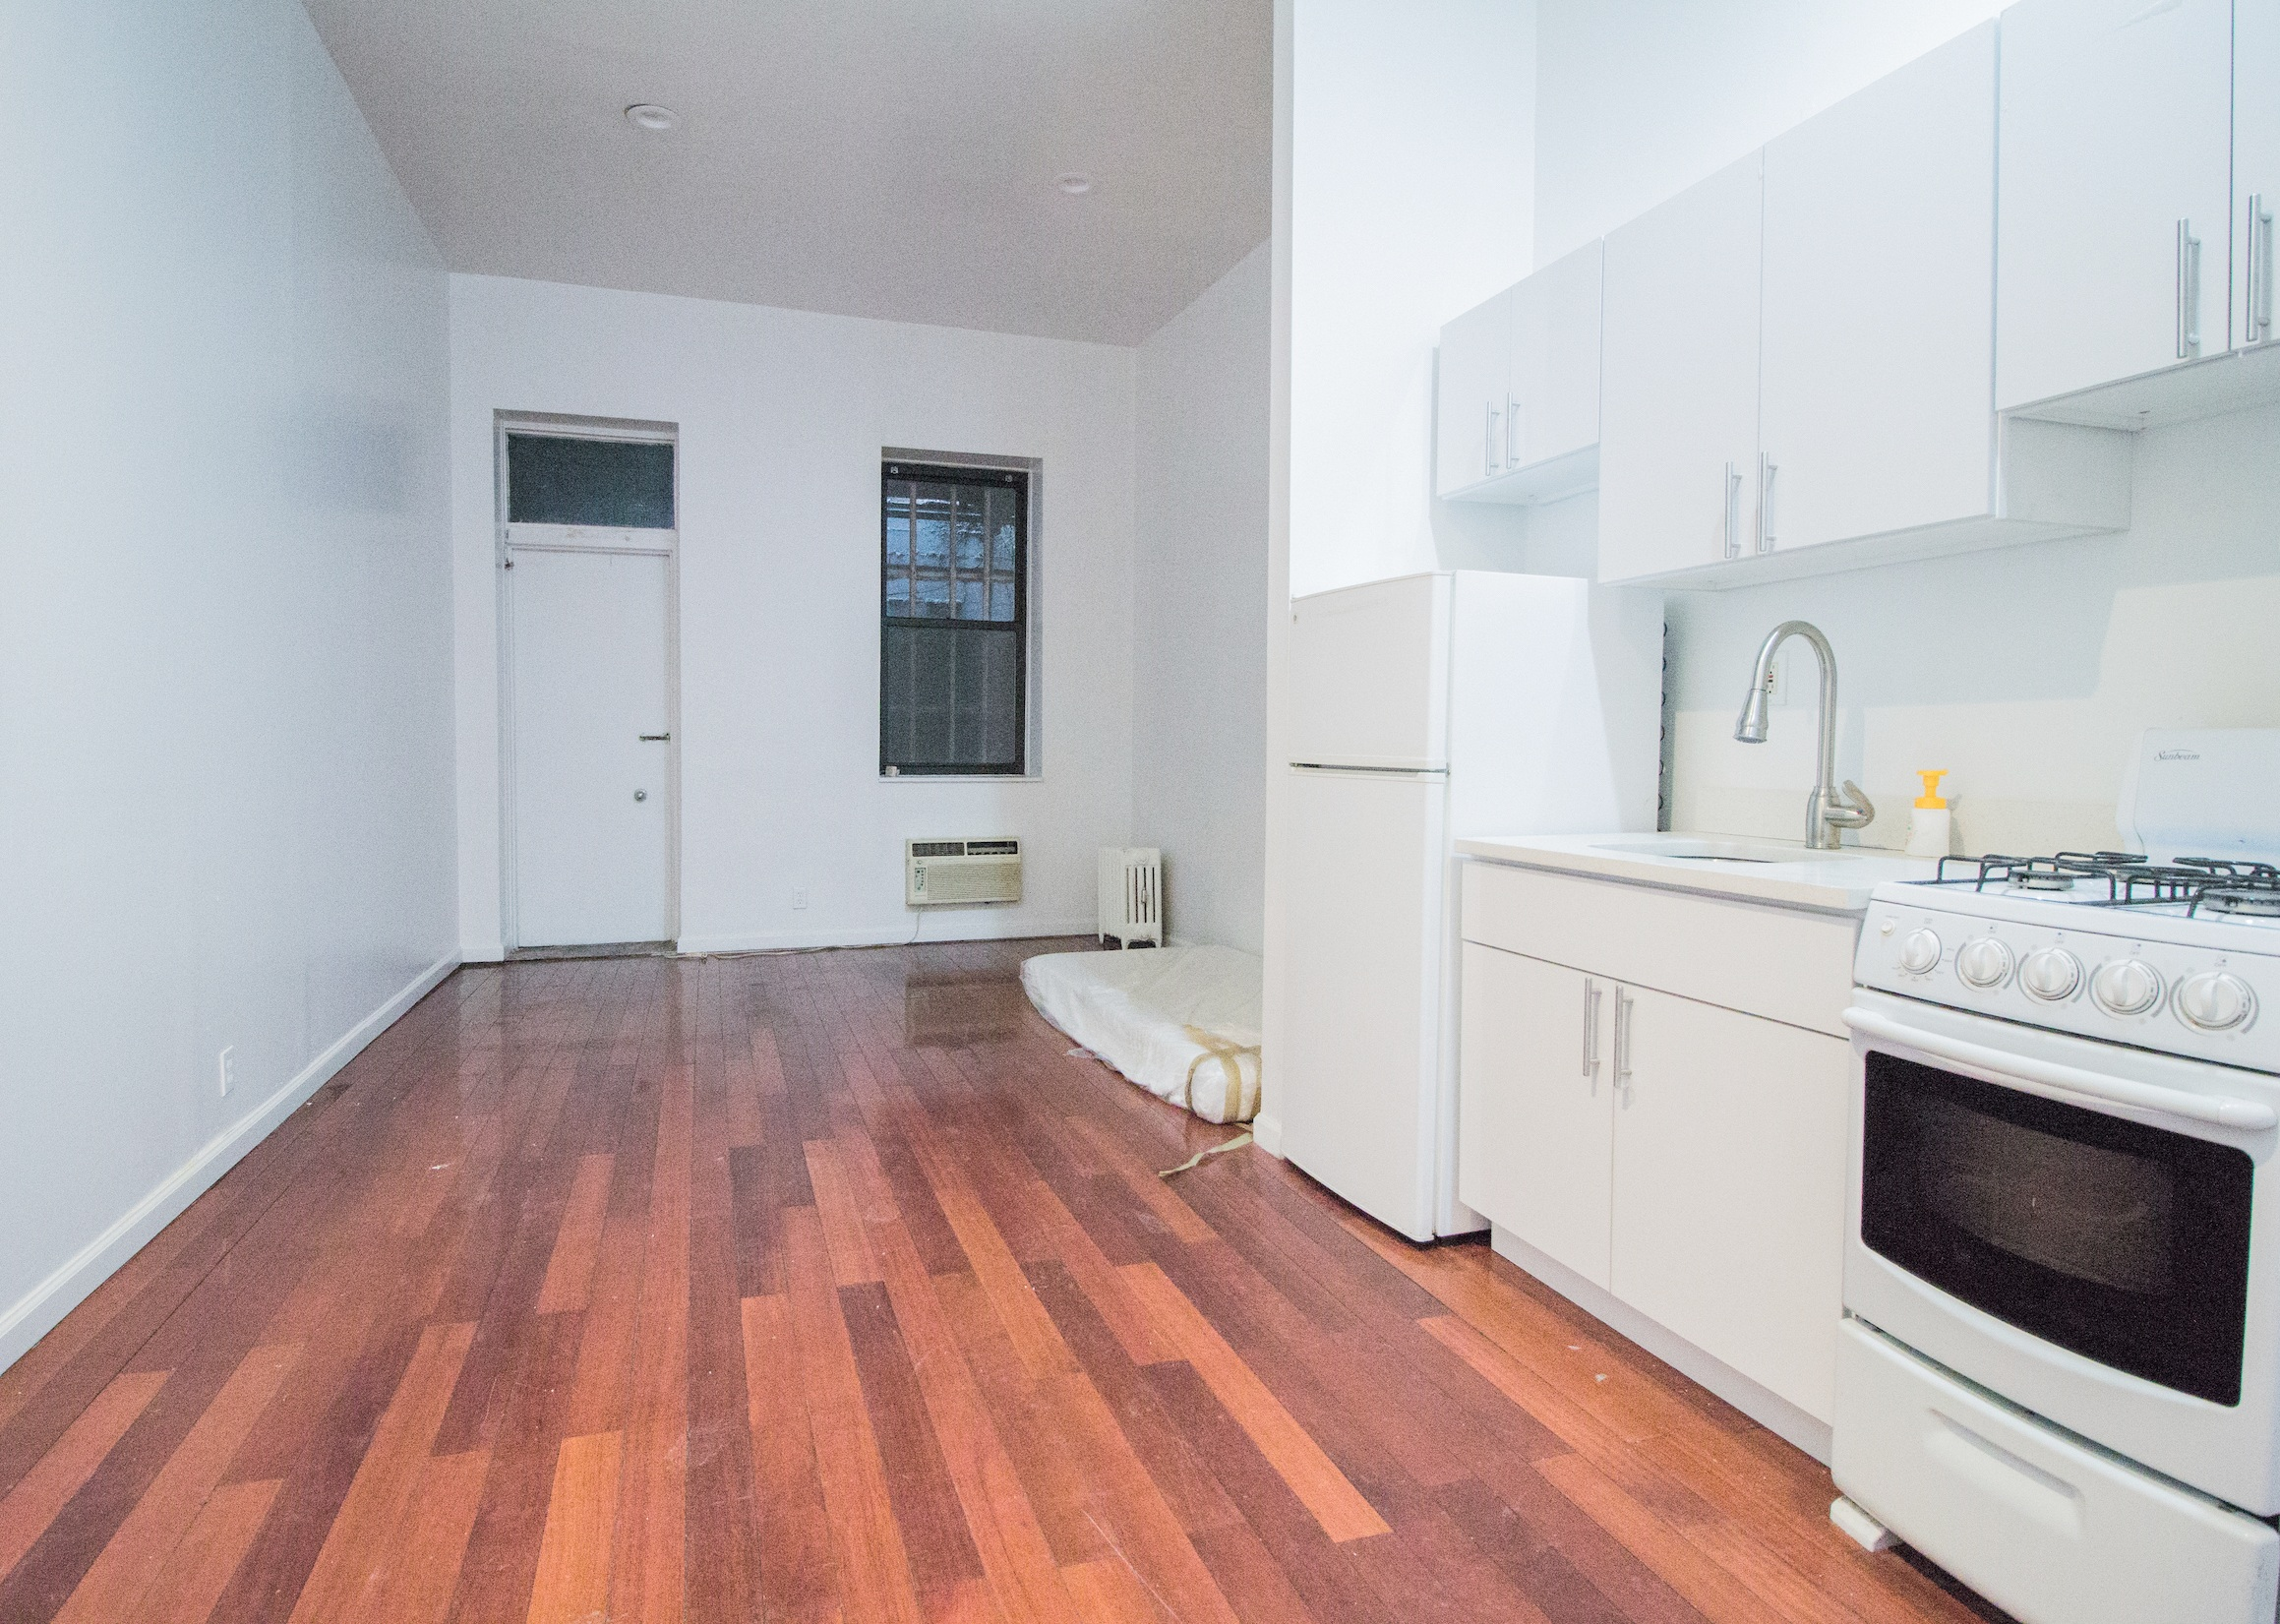 215 Ave A #1RS - Spacious Studio in East Village!Renovated studio offers gorgeous hardwood floors, open kitchen and large closet. Located on a ground floor in a walk up building that is closet to public transportation, great restaurants and shops.Rent: $1,900 /monthTerms: 12 - 12 MonthsAvailable: Immediate